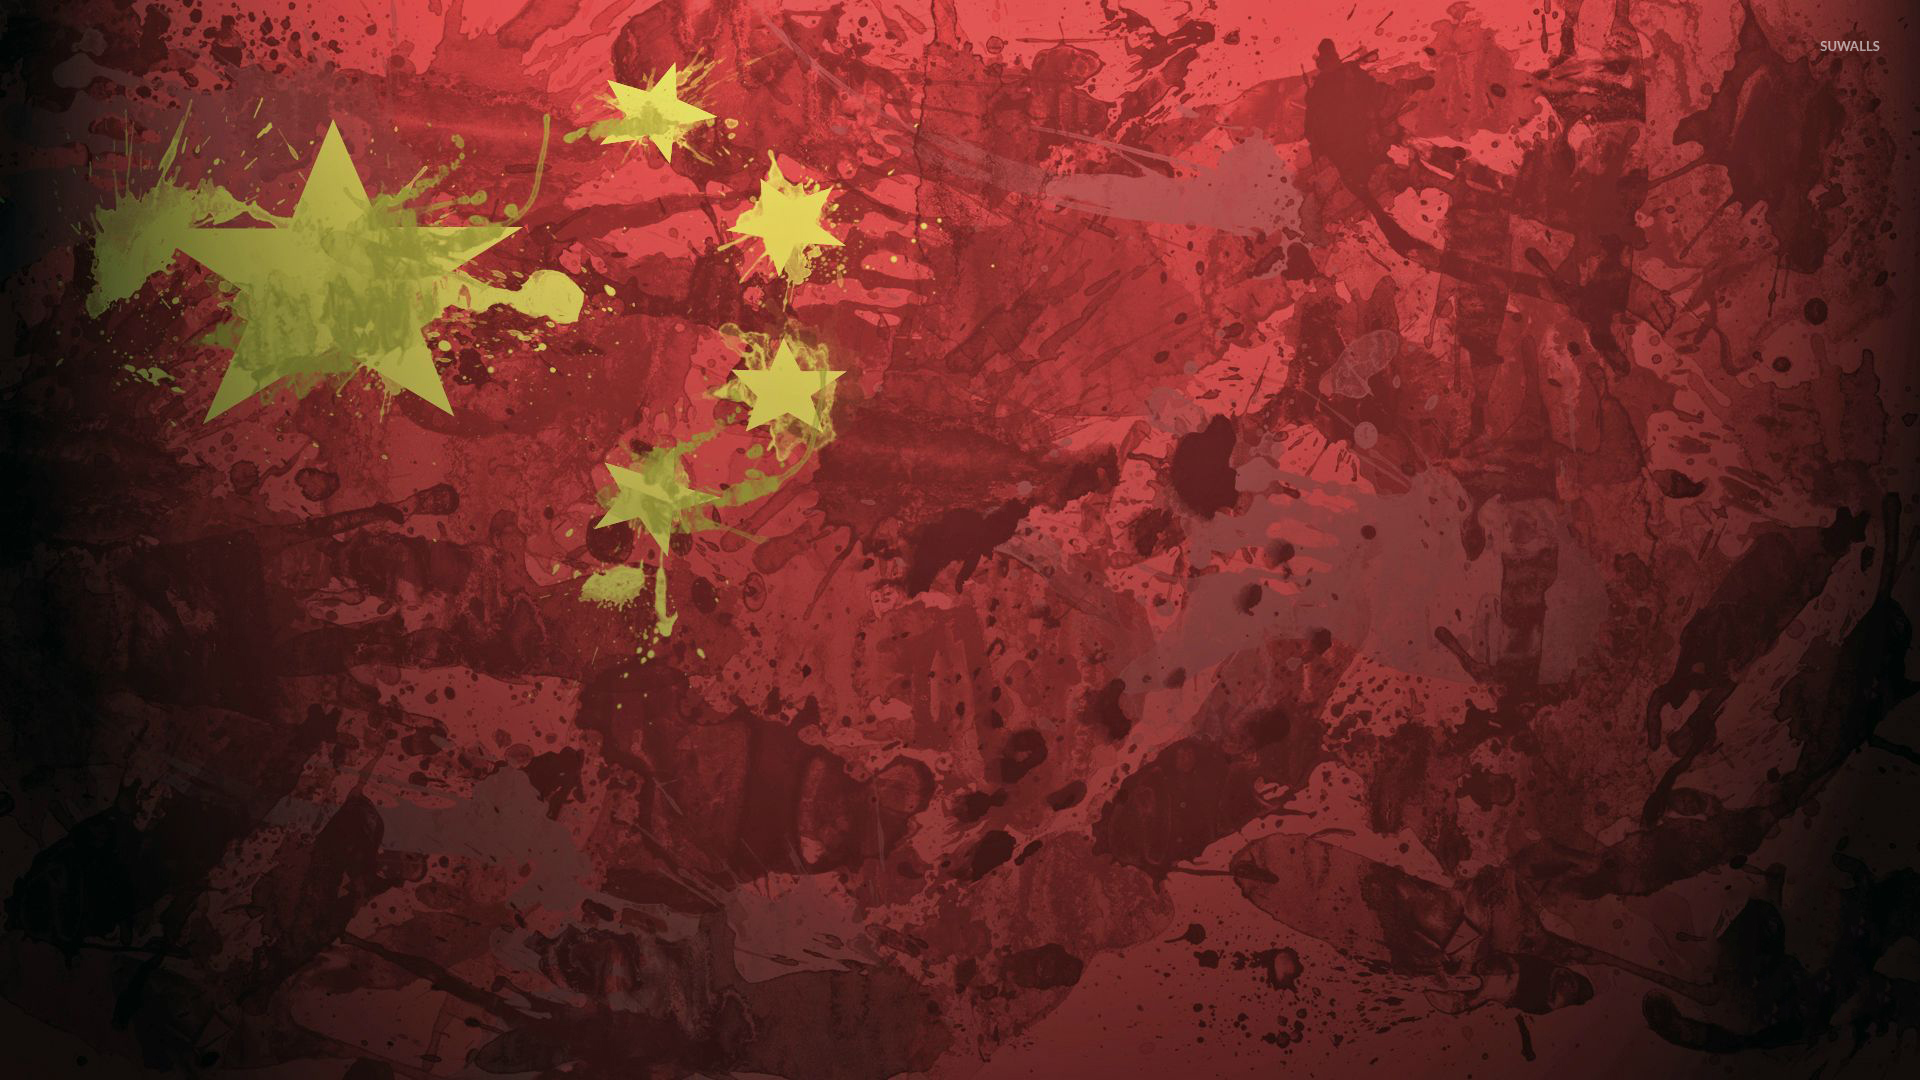 Game Of Thrones Quotes Wallpaper 1920x1080 China Flag With Paint Drops Wallpaper Digital Art